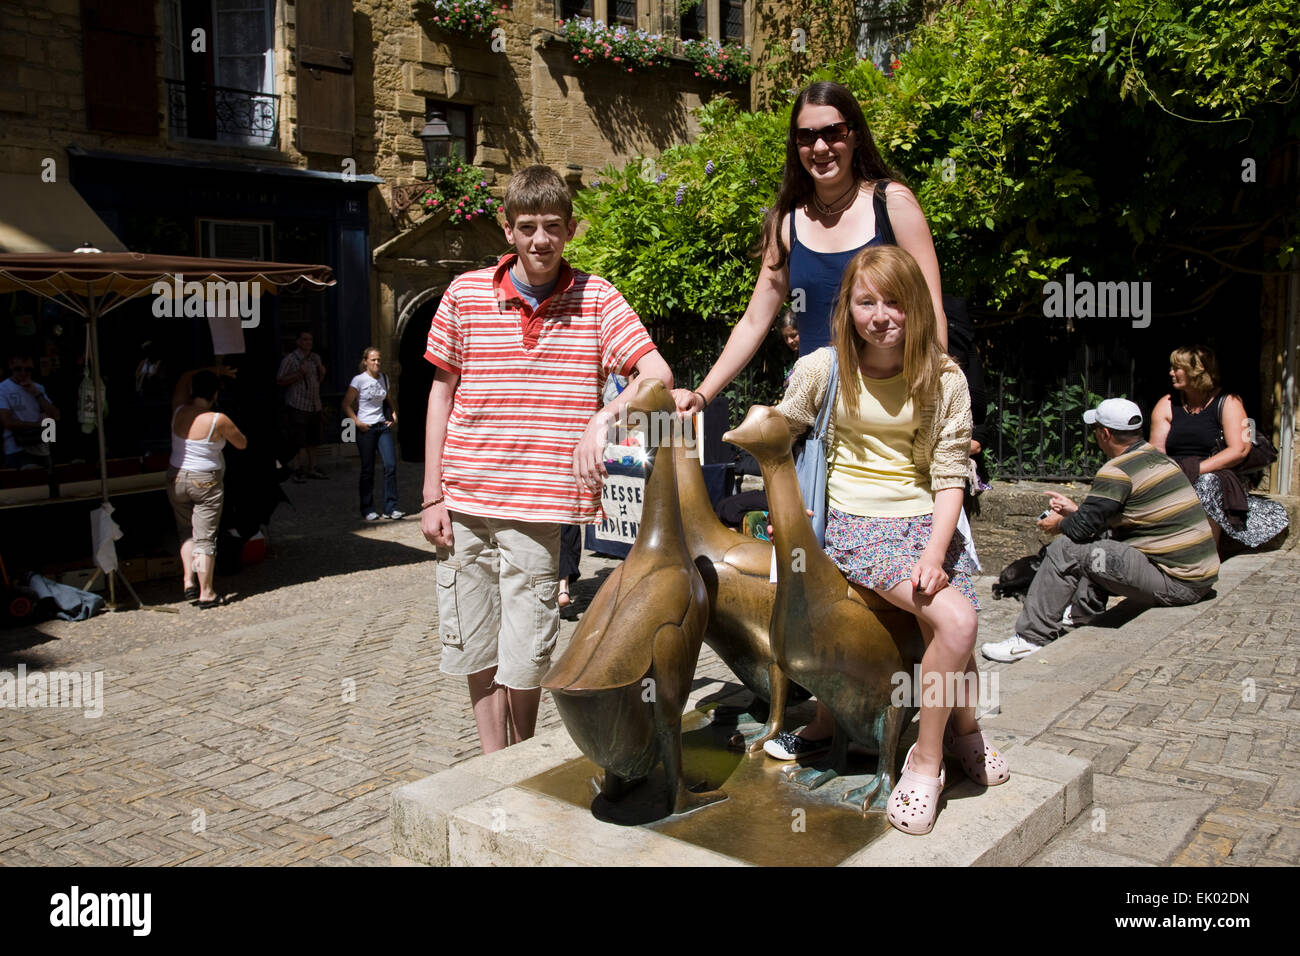 Three teenaged children stand and sit on bronze geese sculptures in Sarlat. - Stock Image